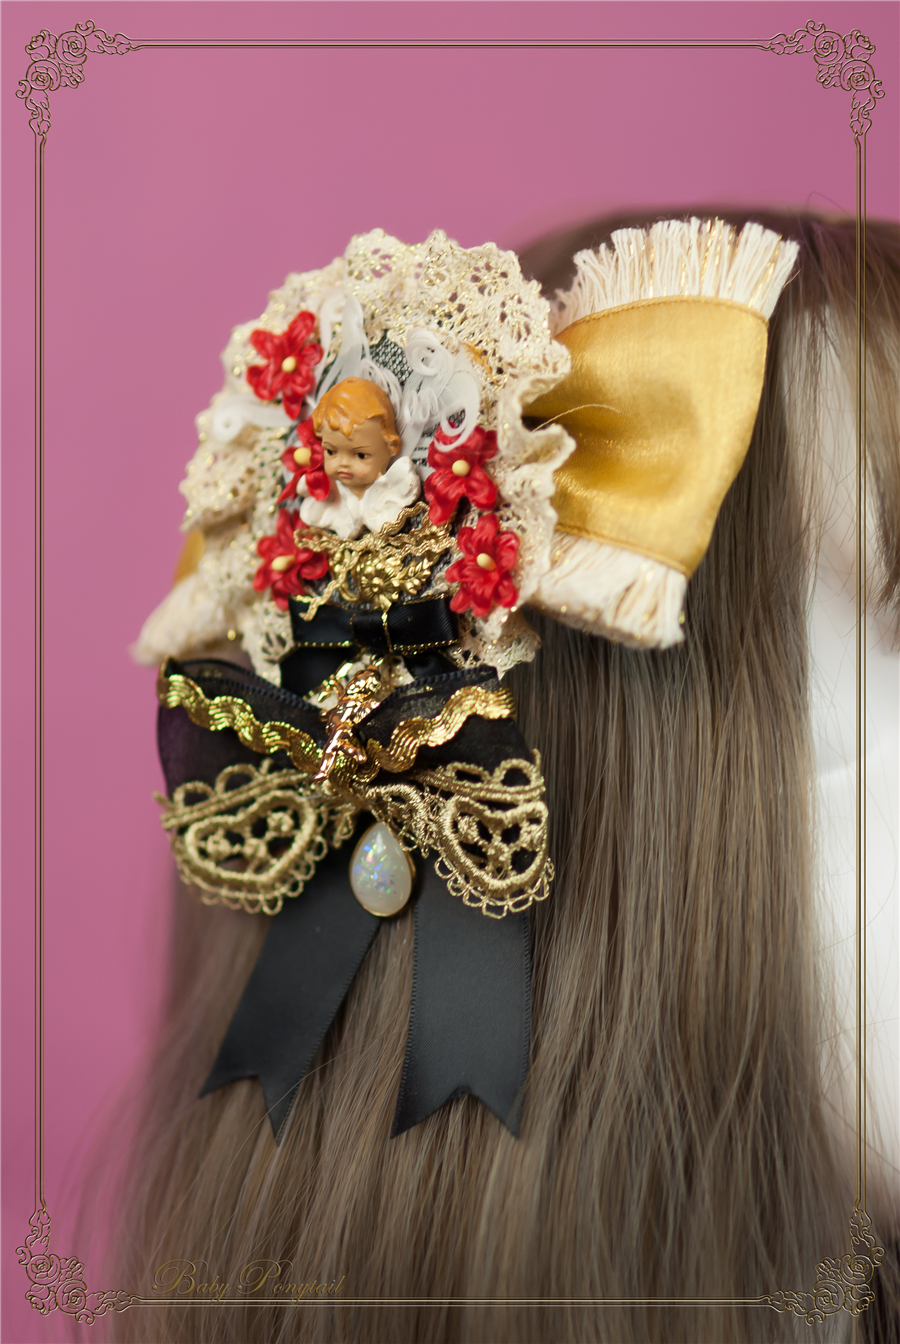 Baby Ponytail_Stock photo_Circus Princess_Angel Brooch_Black_02.jpg